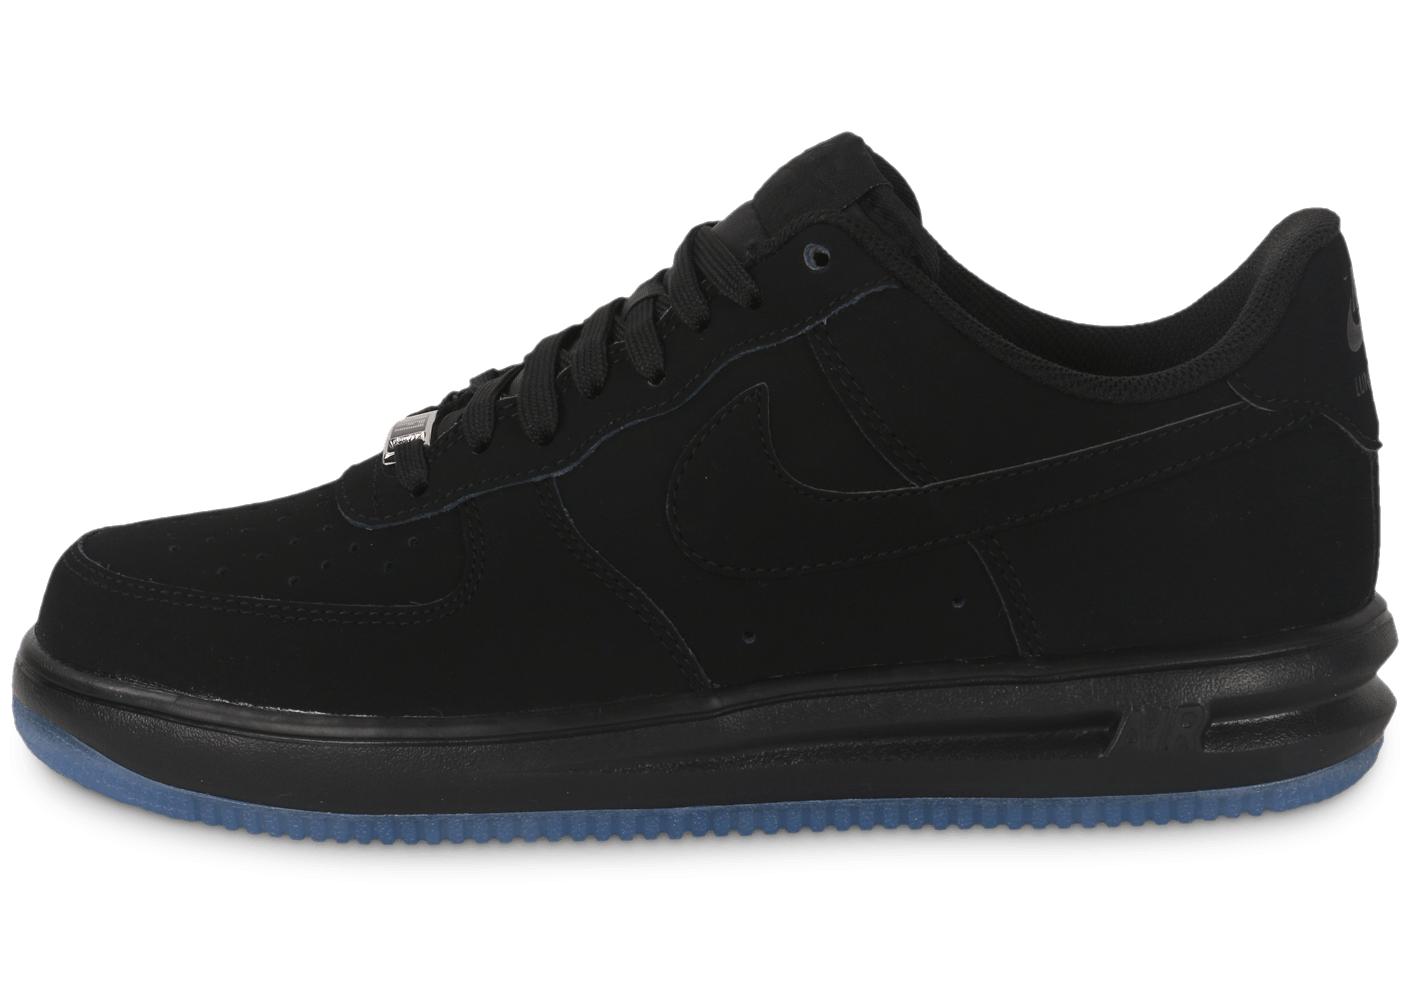 Sneakers Nike Air Force One Lunar avec la technologie Lunarlon